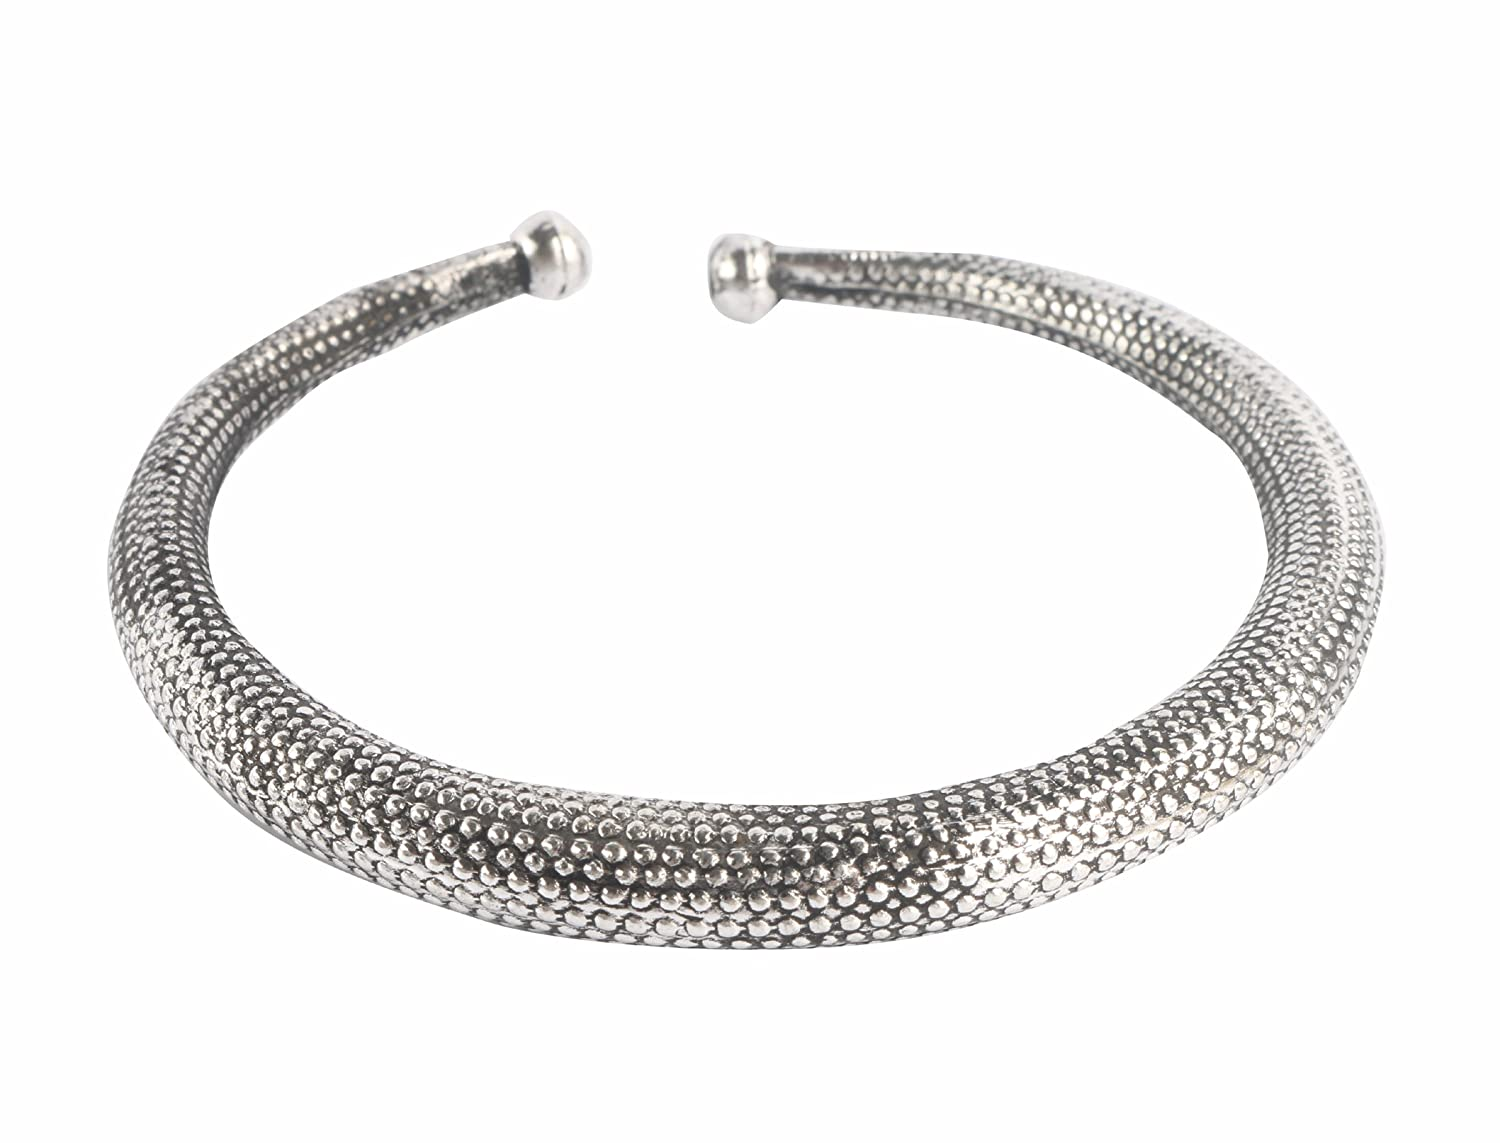 Sansar India Engraved Kada Beach Wear Indian Anklet Jewelry for Girls and Women 570A